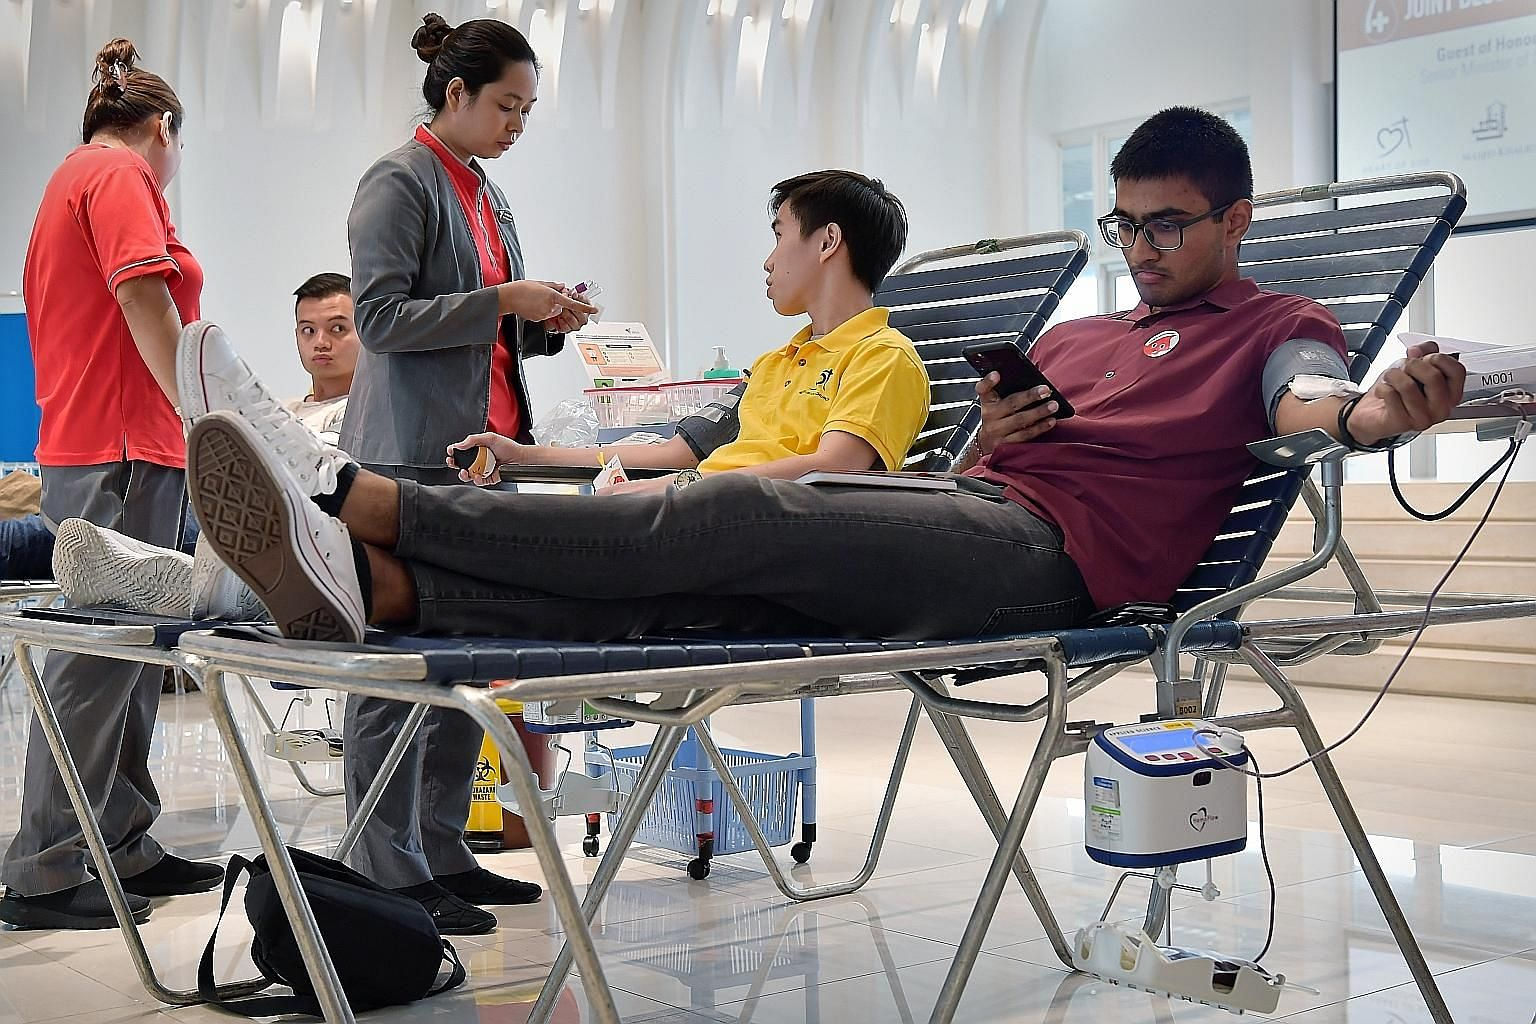 Mr Vamsi Krishna, 21, and student Bowen Ong (in yellow), 18, were among about 200 people who donated blood at the event held jointly by Heart of God Church, Khalid Mosque, Geylang United Temple and Nanyang Leow-Sih Association yesterday.